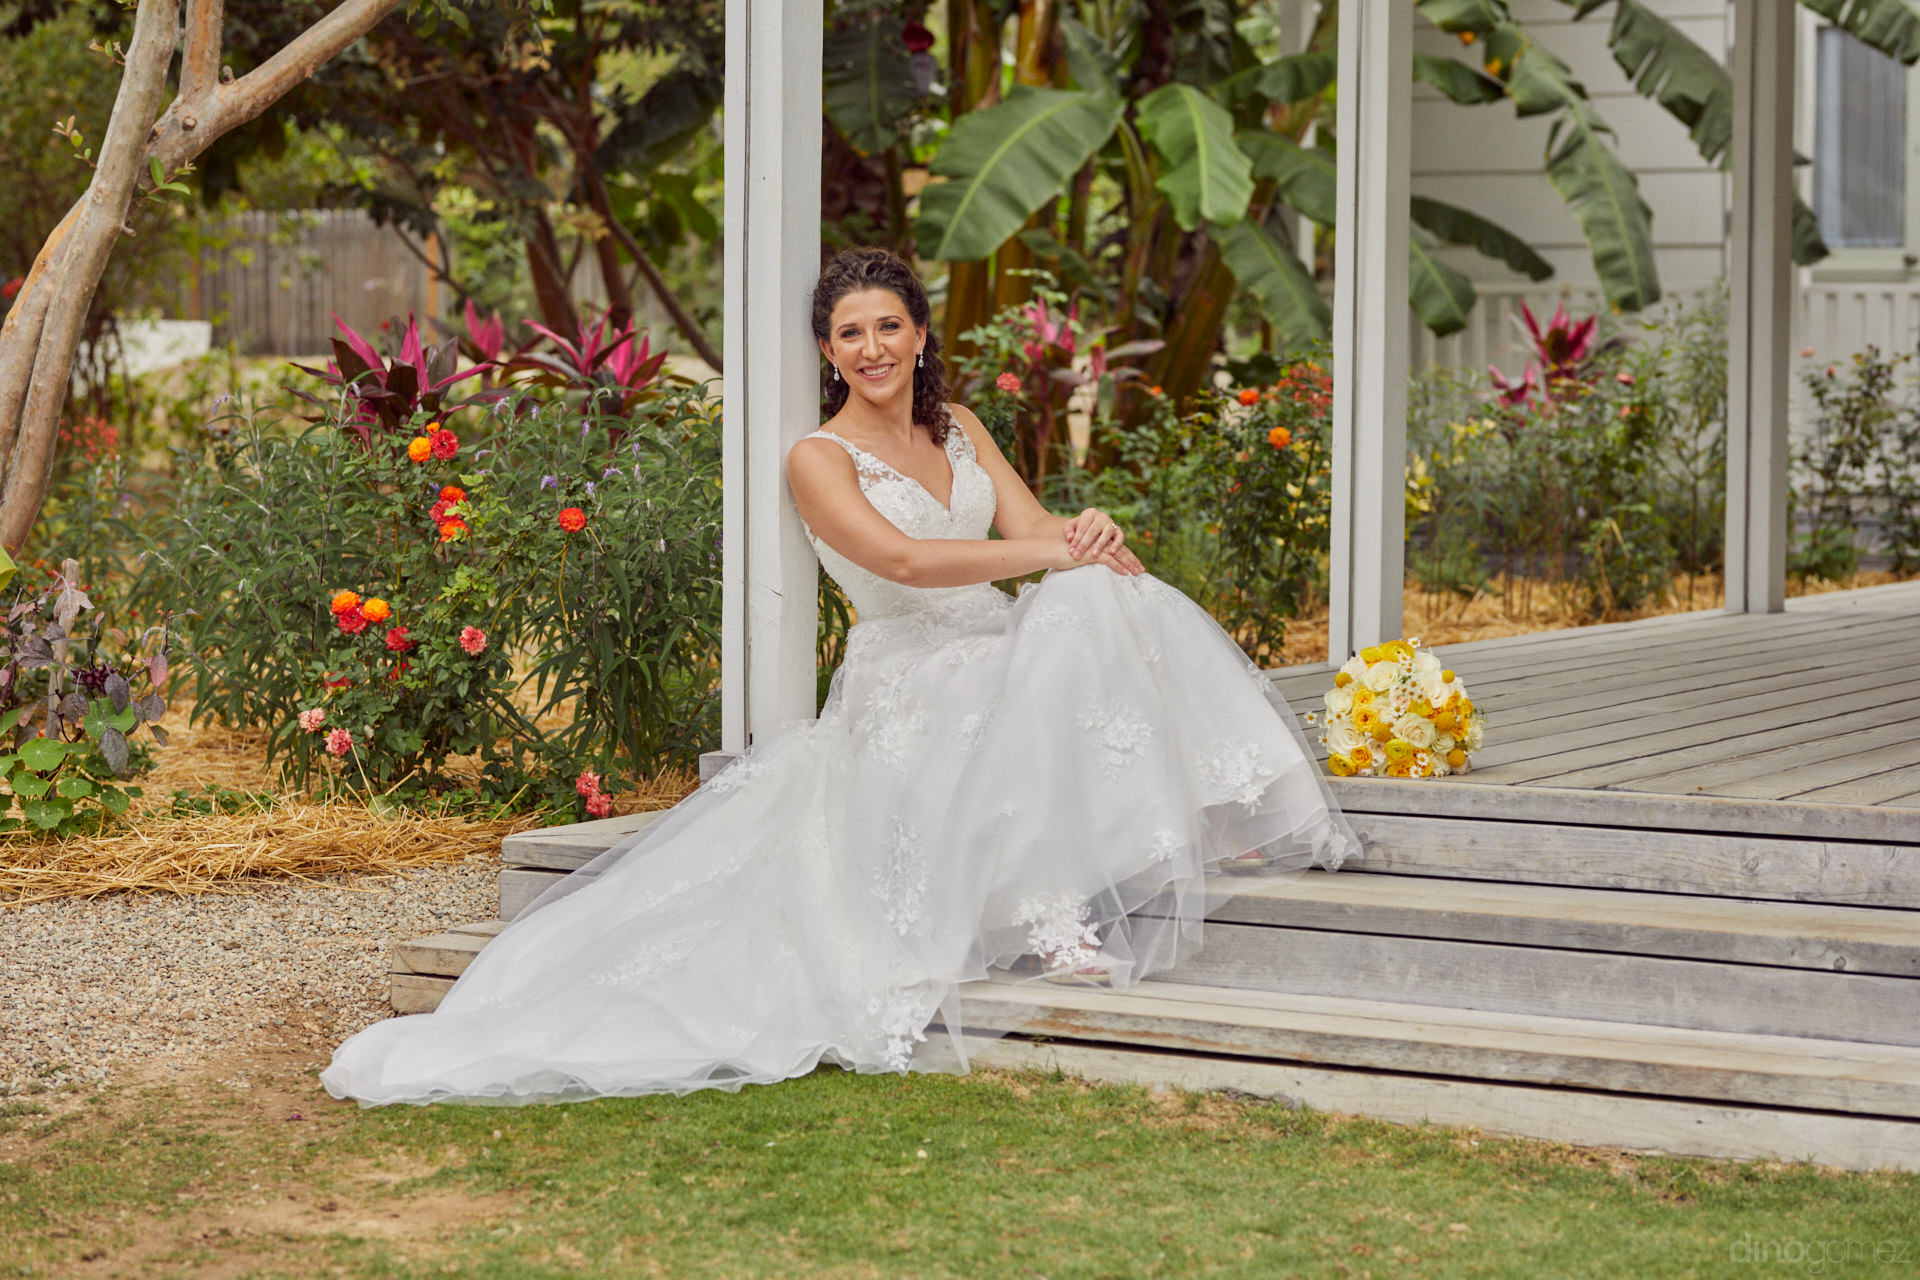 Best Wedding Photographers In Los Cabos - Hilary & Bryan Flora Wedding